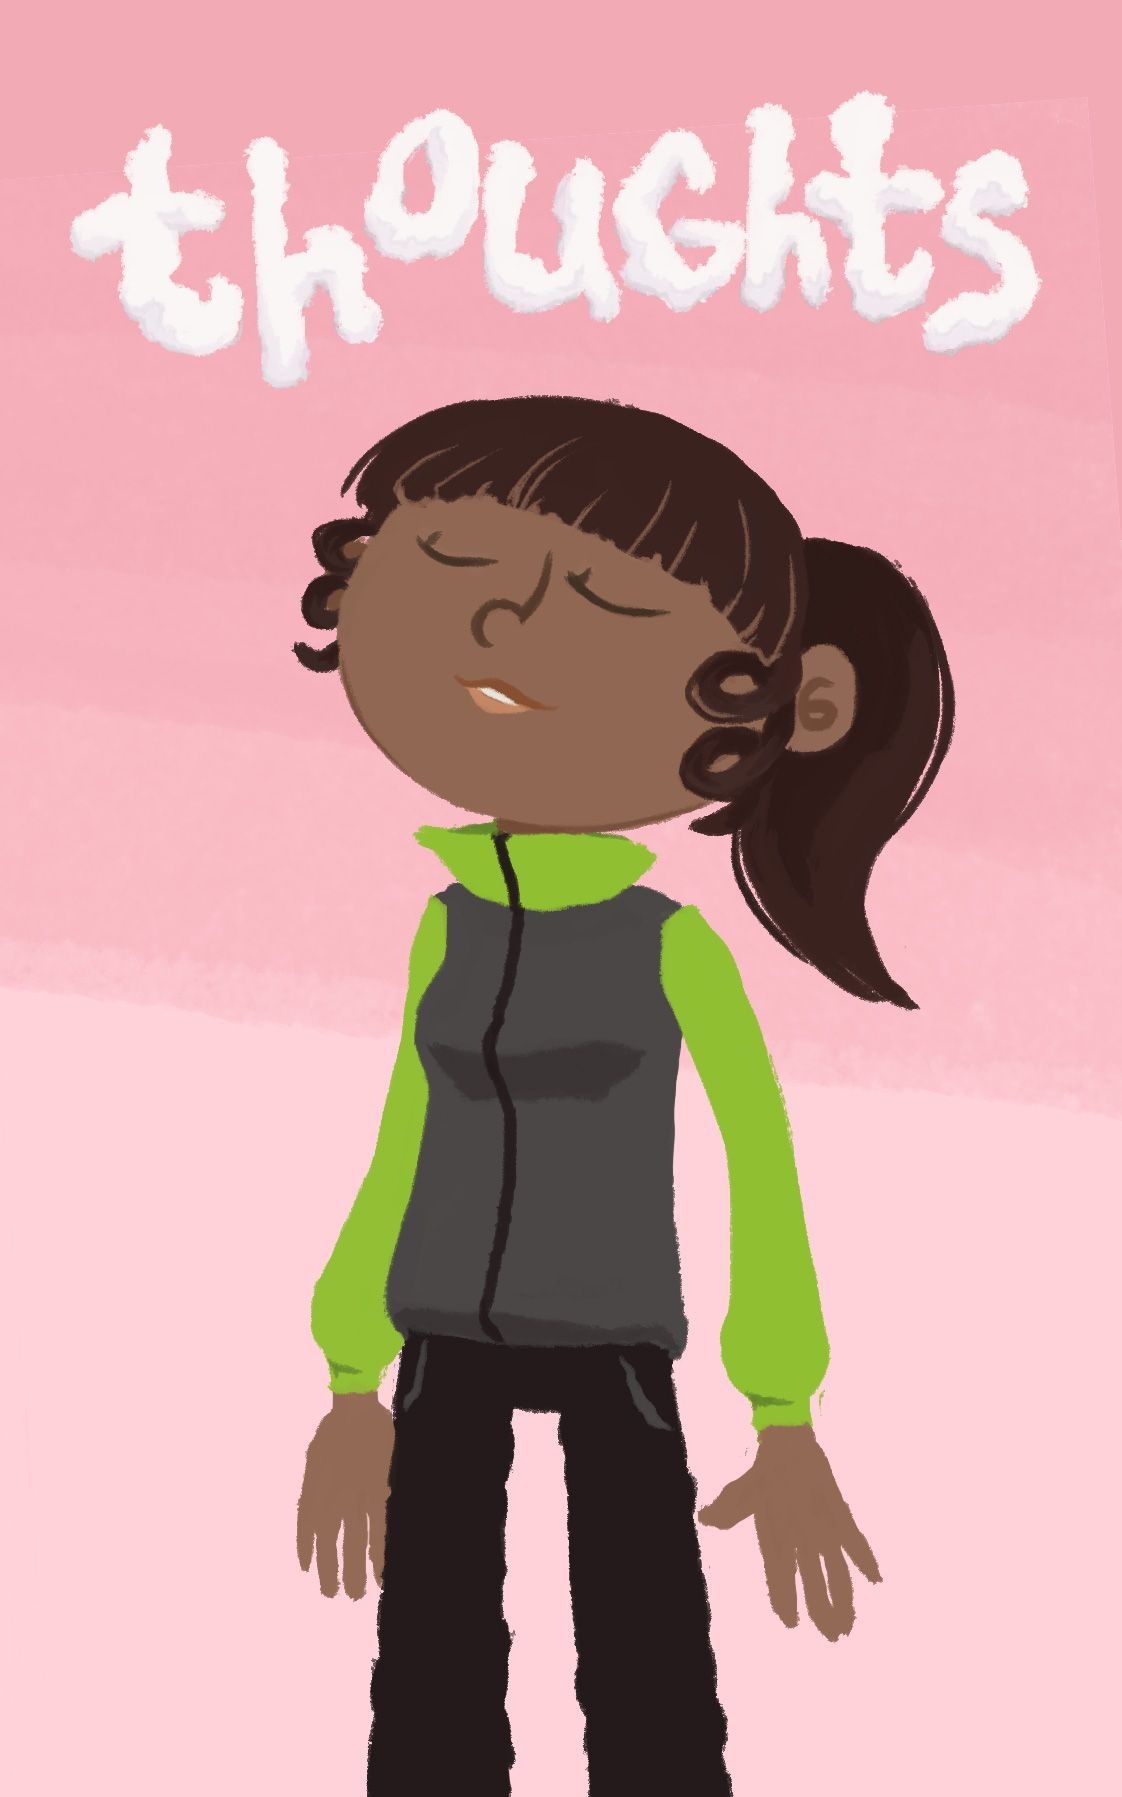 A Mindful Minute 3 Fun Mindfulness Exercises For Kids Illustrated